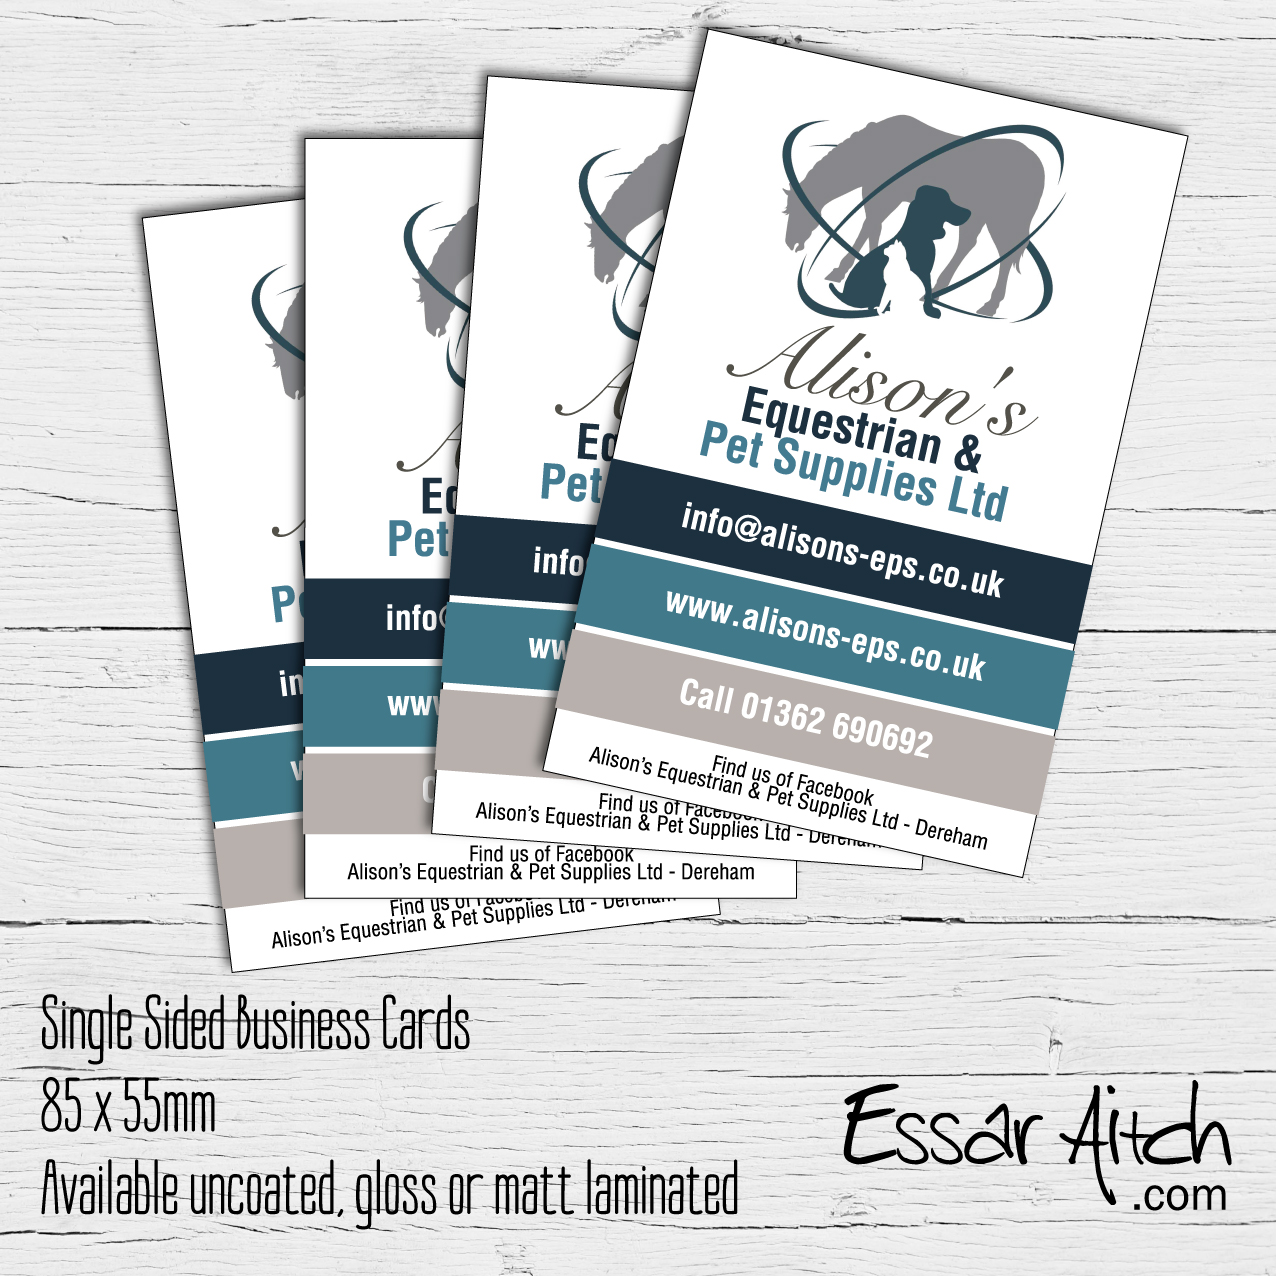 Fantastic equestrian business cards images business card ideas equestrian business cards uk image collections card design and reheart Gallery